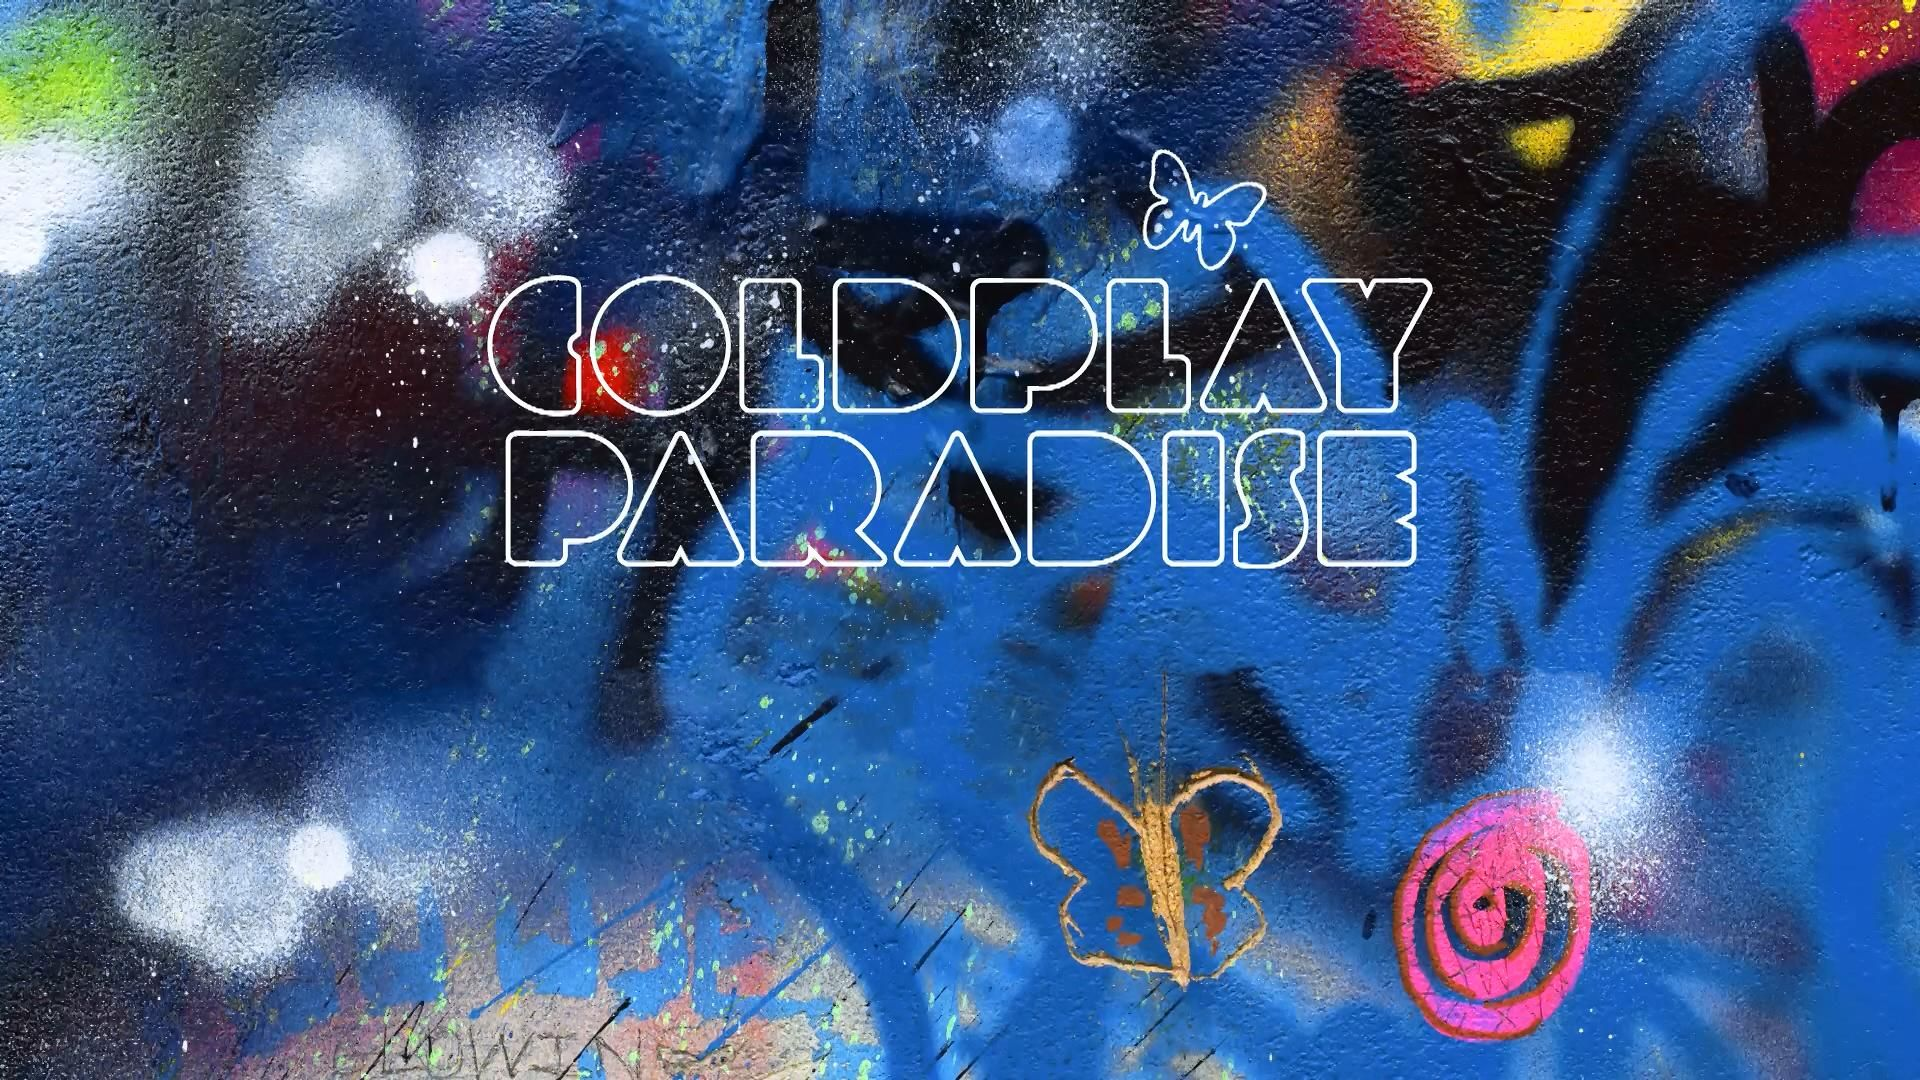 Coldplay wallpapers wallpaper hd wallpapers pinterest coldplay wallpapers wallpaper hd wallpapers pinterest coldplay wallpaper and wallpaper voltagebd Choice Image